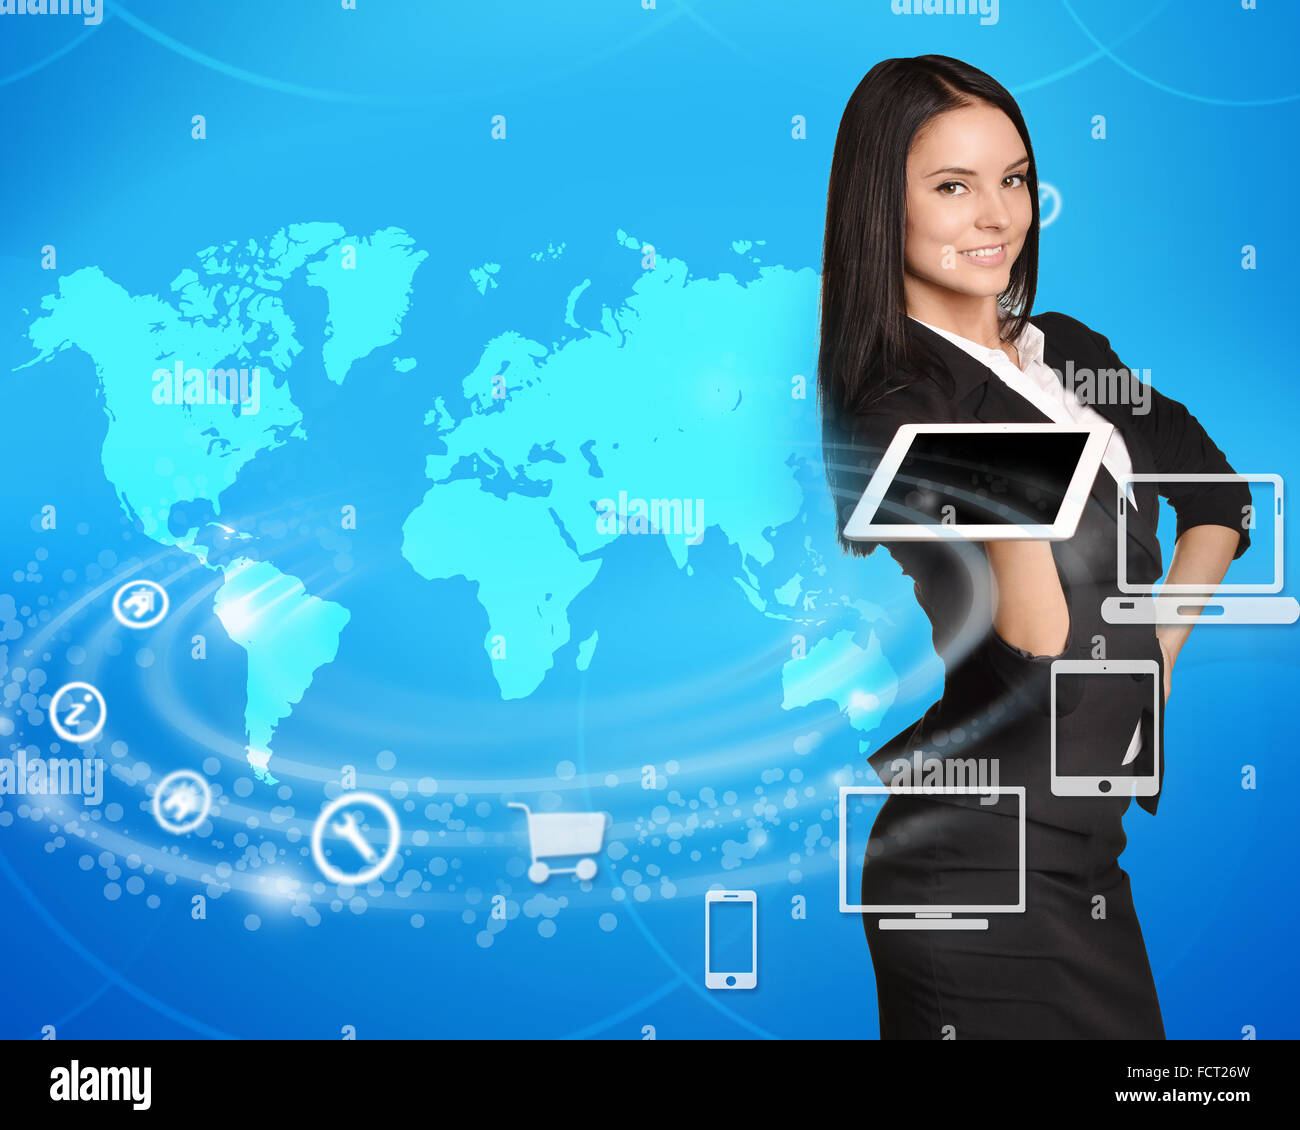 Business woman standing with tablet in hand on world map background - Stock Image